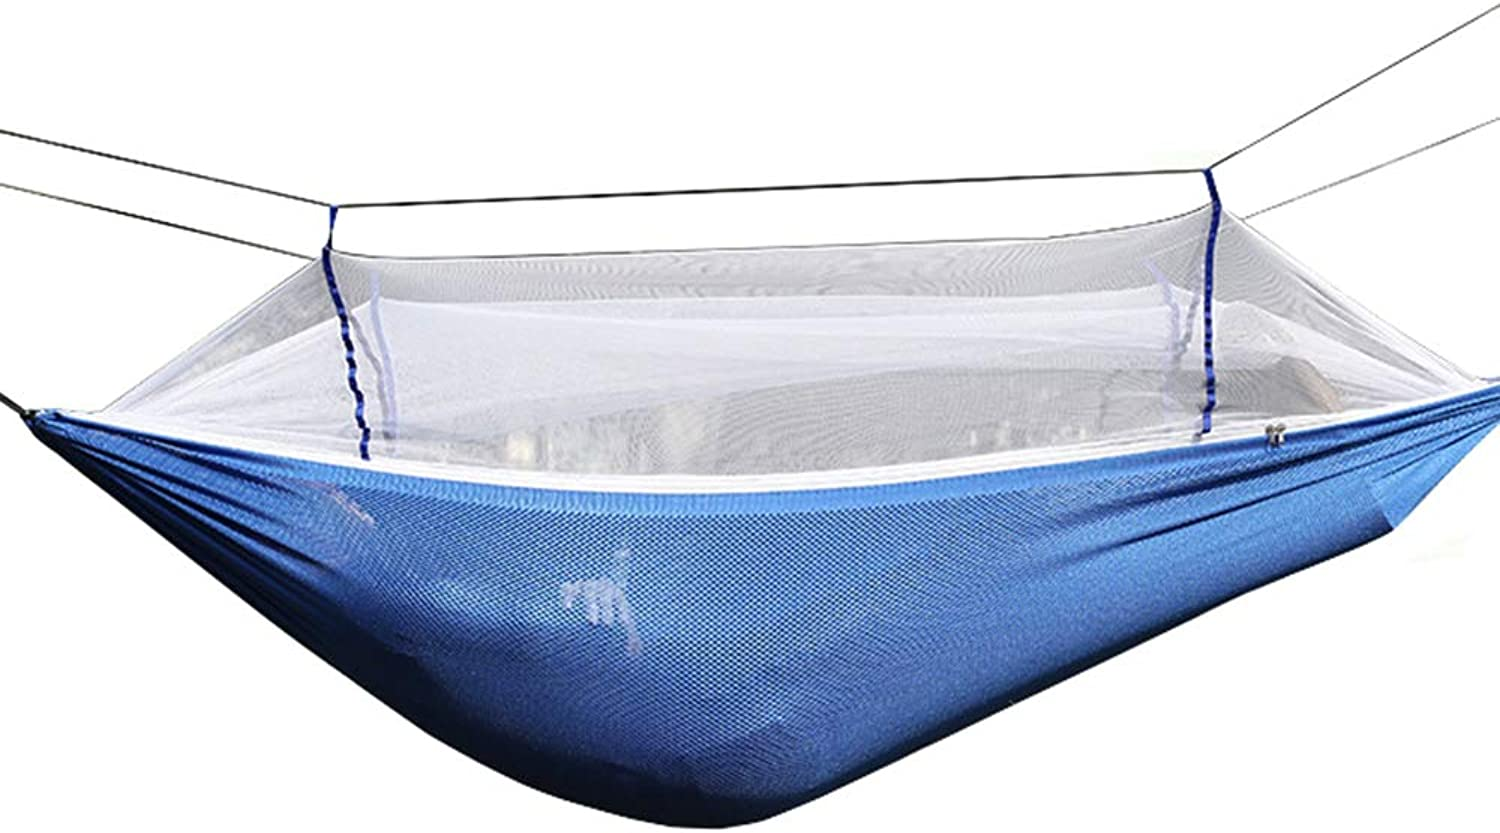 Camping Hammock with Mosquito Net, Portable Encryption Mesh Double Parachute, Outdoor Swing Bed, Storage Bag, Hiking Max.Load of 200kg